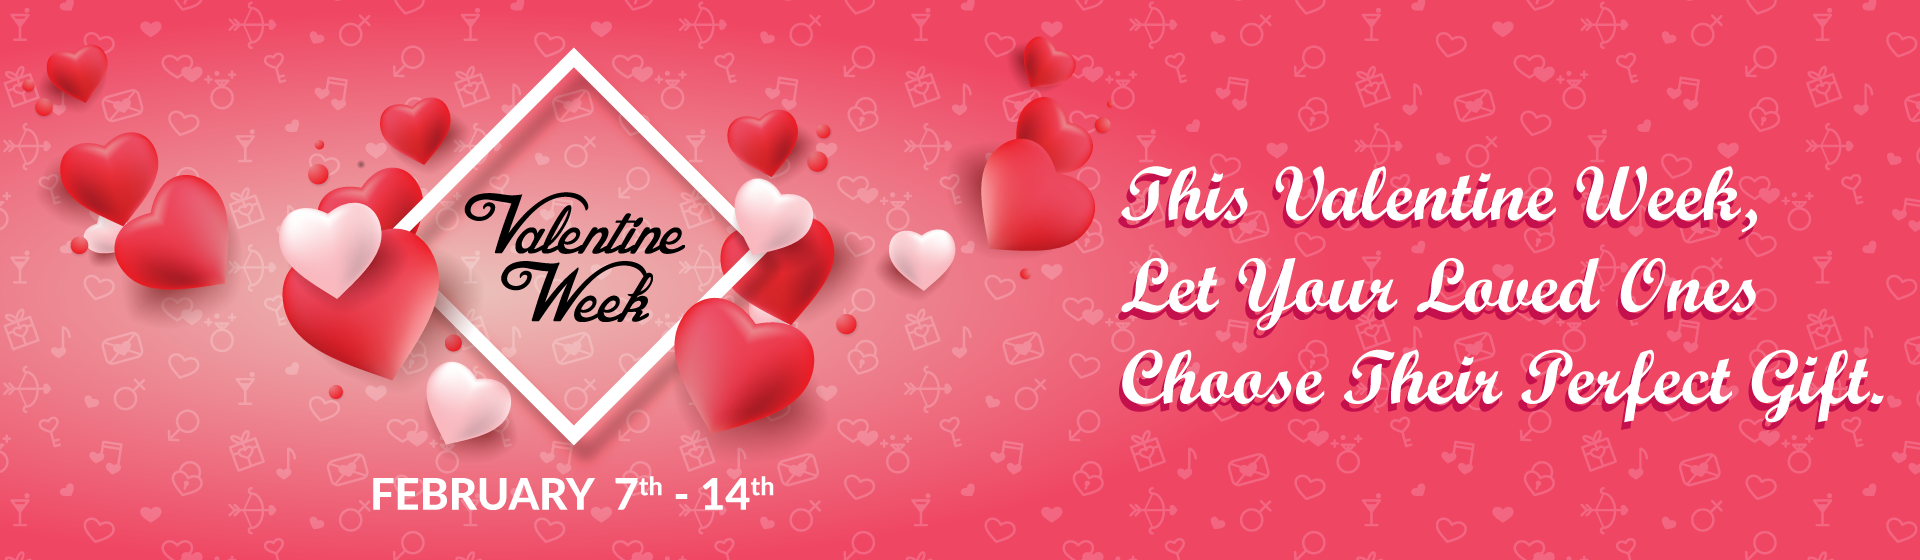 Valentine Week List 2020 All You Need To Know About The Valentine Week